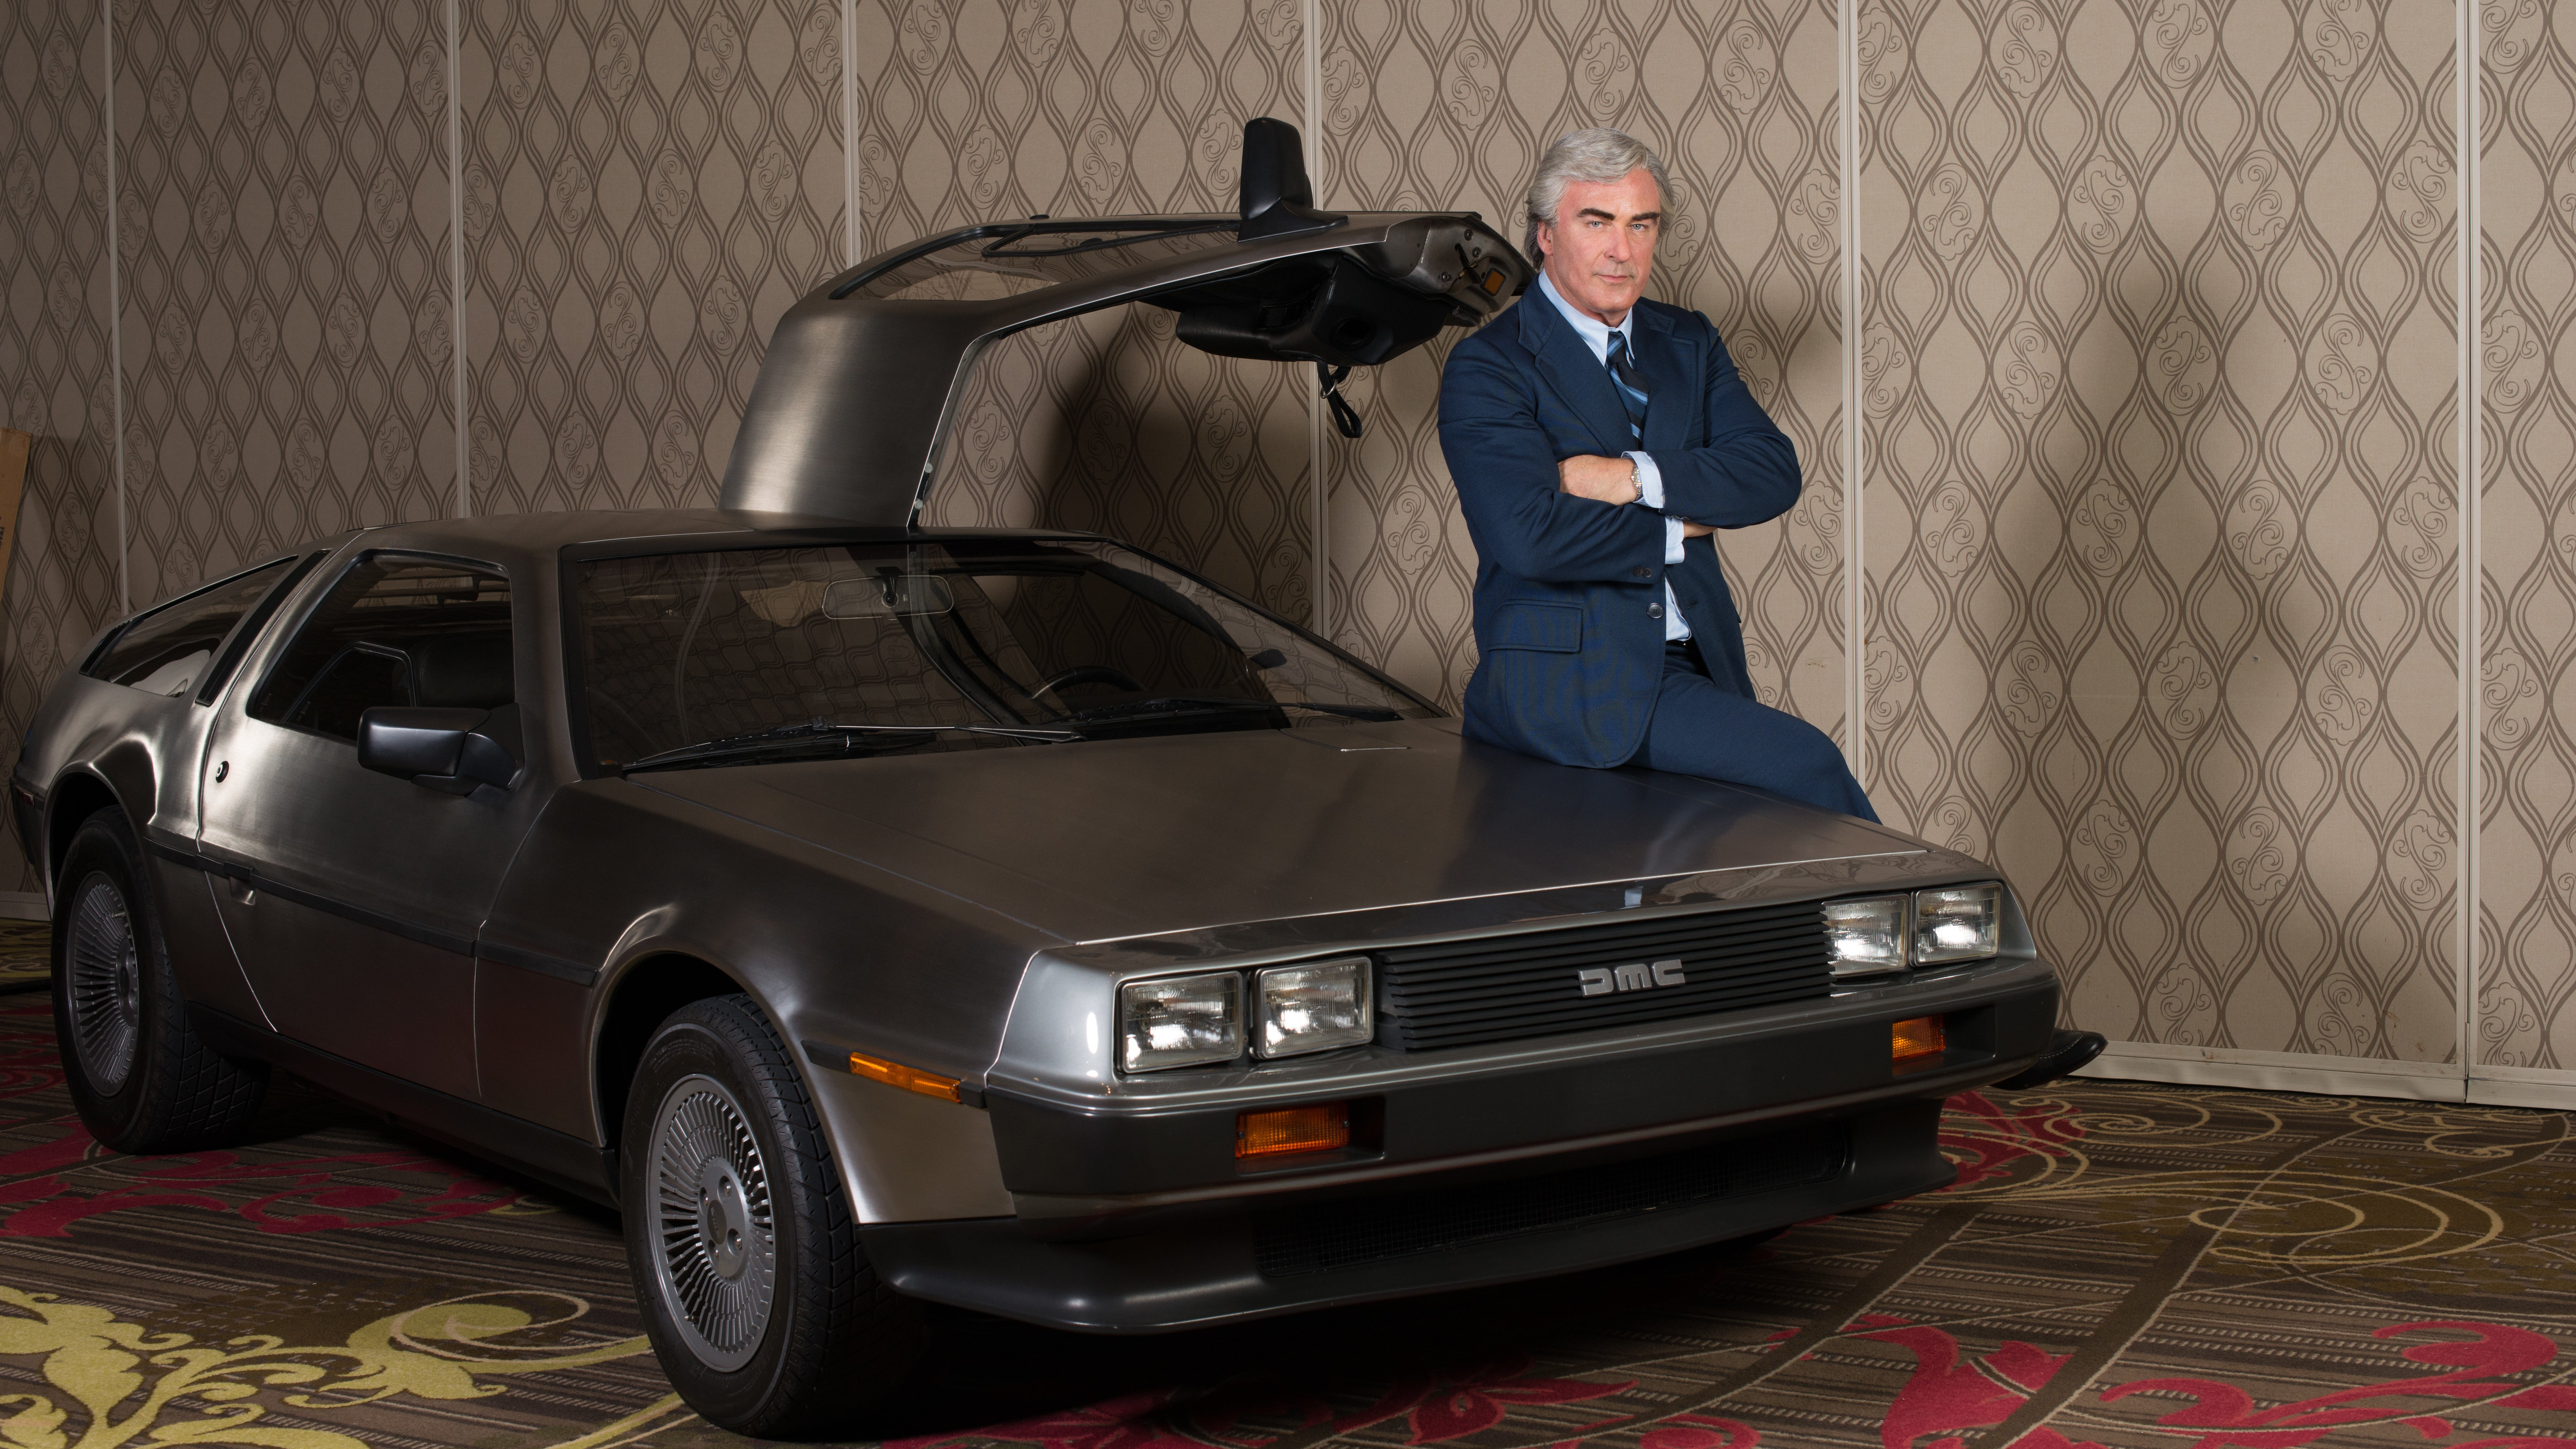 Framing John DeLorean Is The Story Of A Man Whose Life Was Too Colourful For A Black And White World